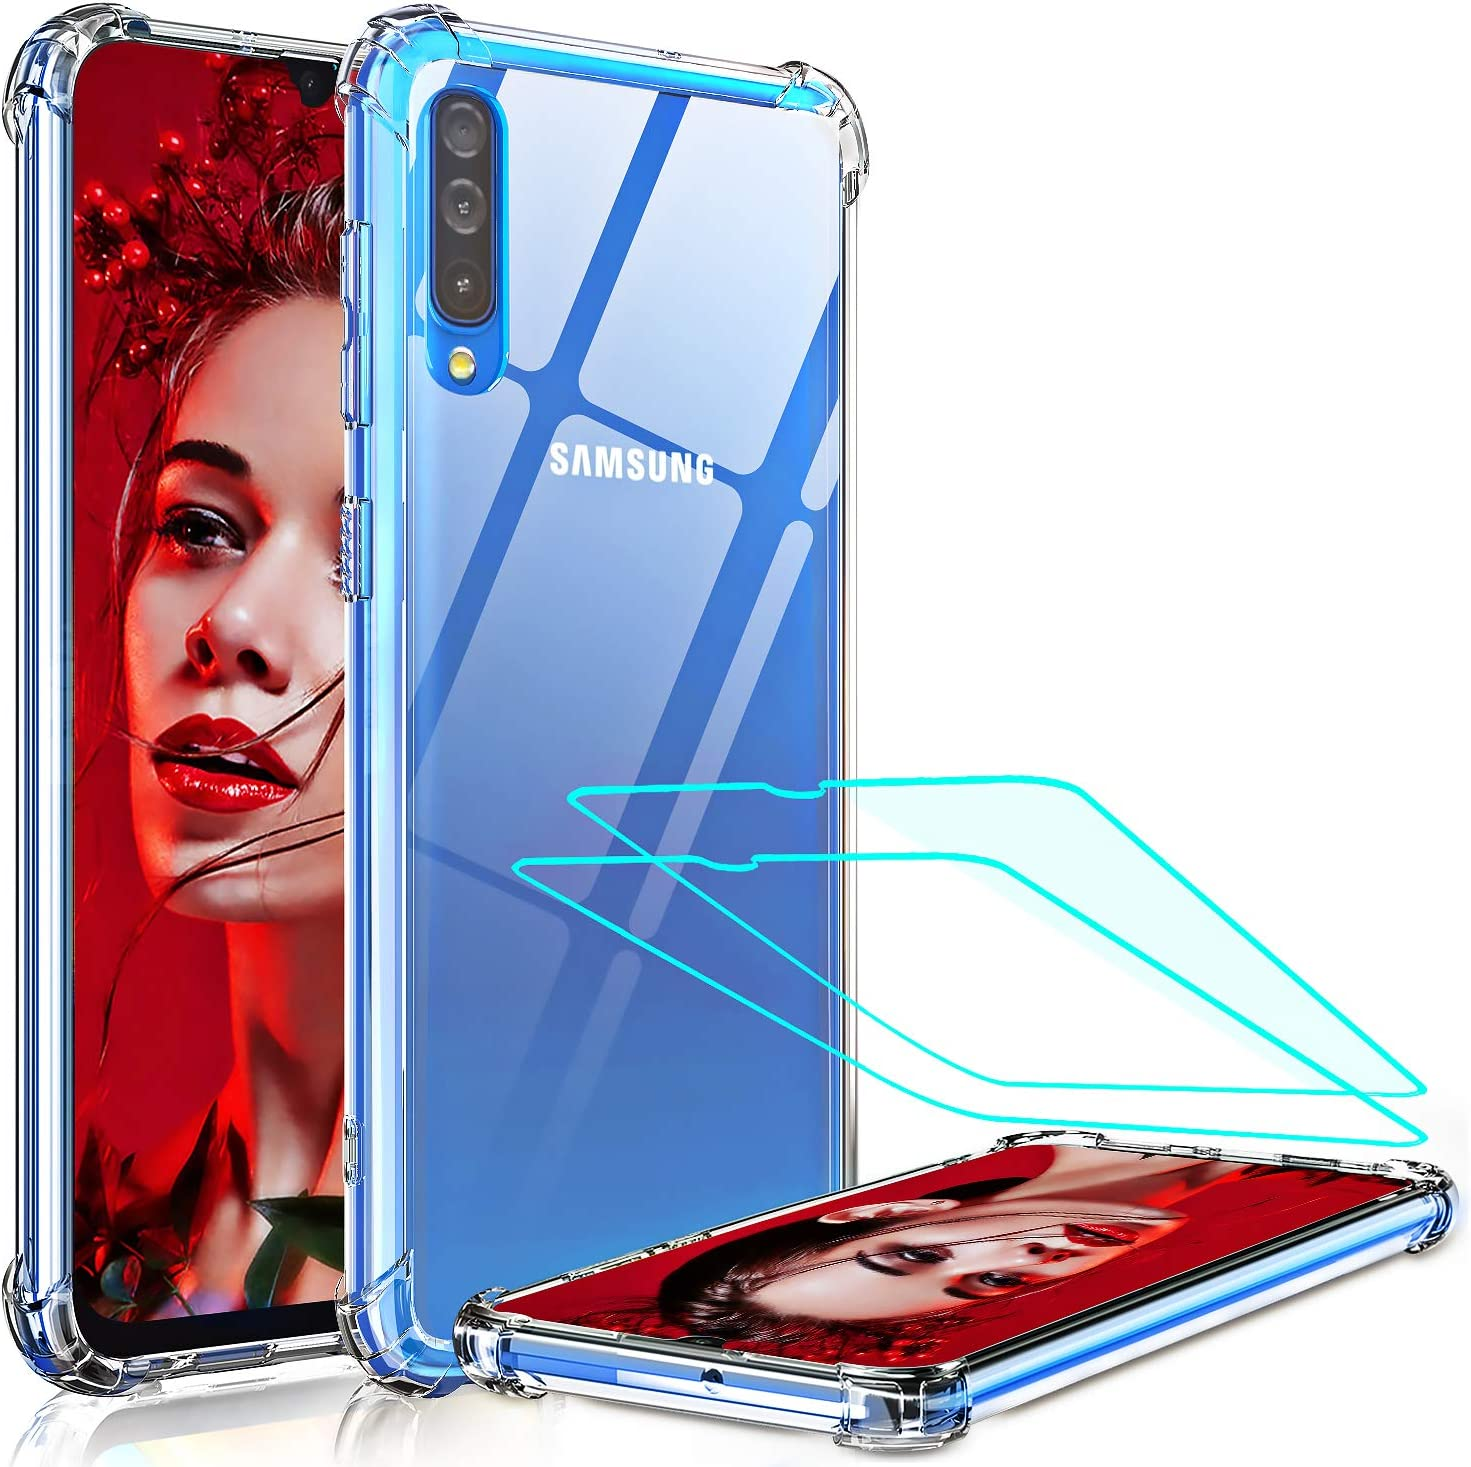 Amazon Com Samsung A50 Case Samsung Galaxy A50 Case With 2 Tempered Glass Screen Protector Leyi Crystal Clear Hard Pc Soft Tpu Anti Scratch Shock Absorption Bumper Hybrid Slim Phone Cover Cases For A50